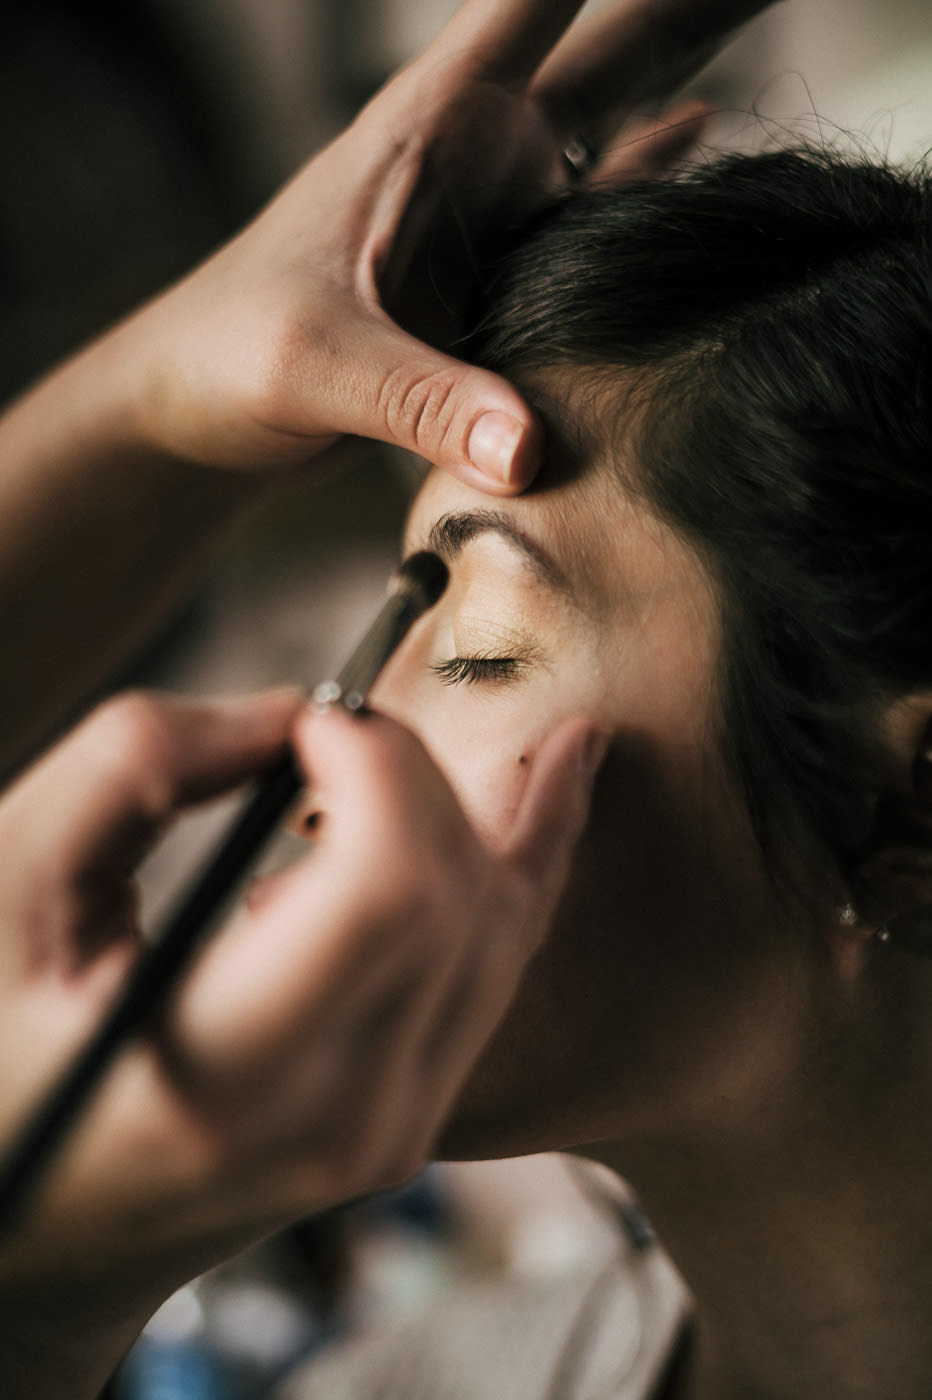 Makeup artist works on brides face before the big wedding in the temecula wine country